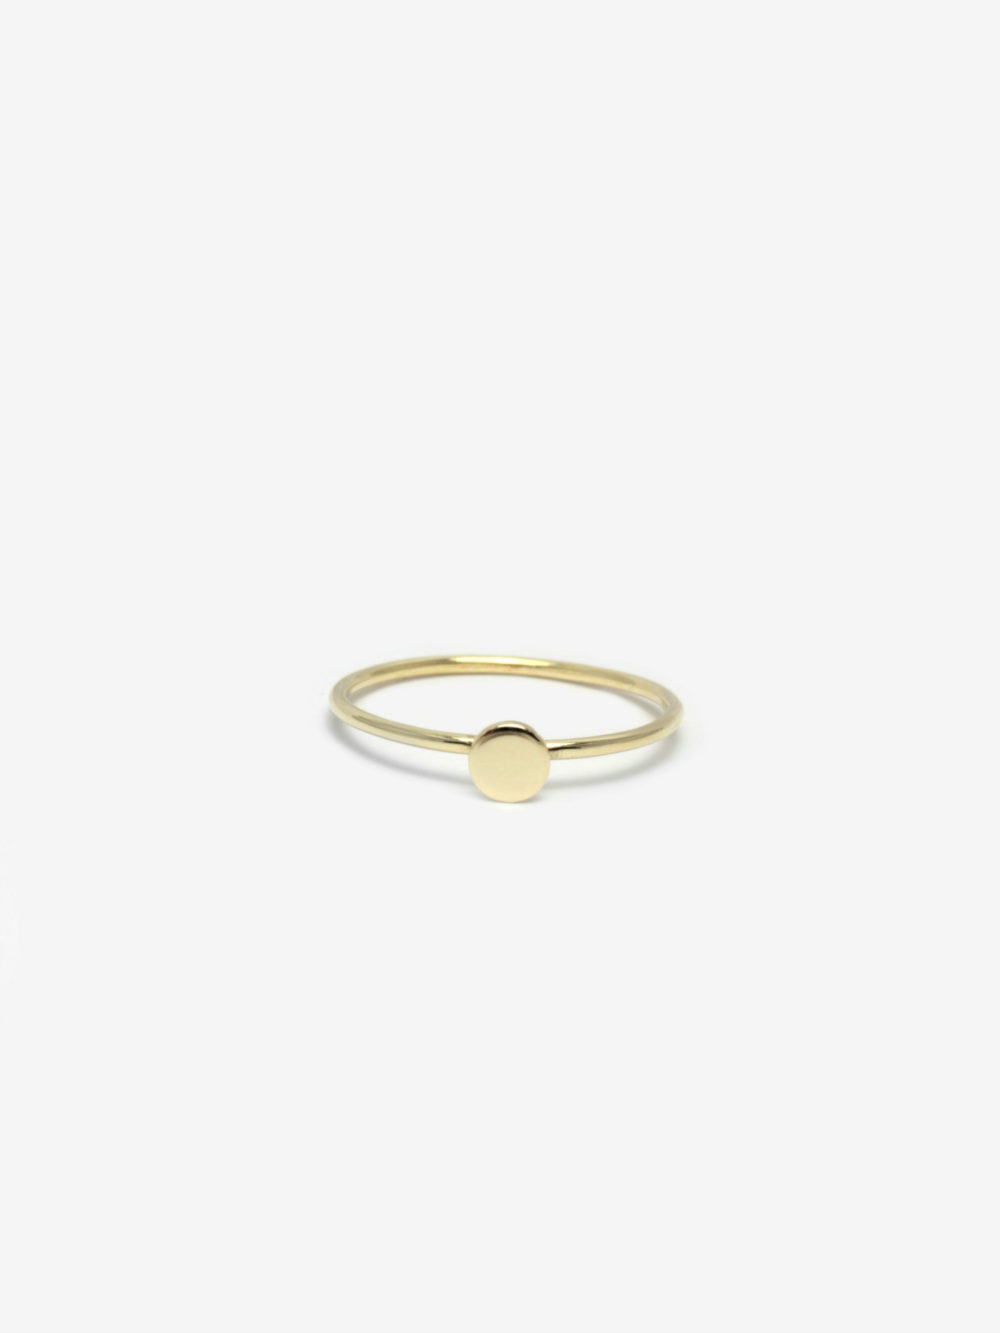 Minimal Dot ring by Bepart - available at utopiast.com